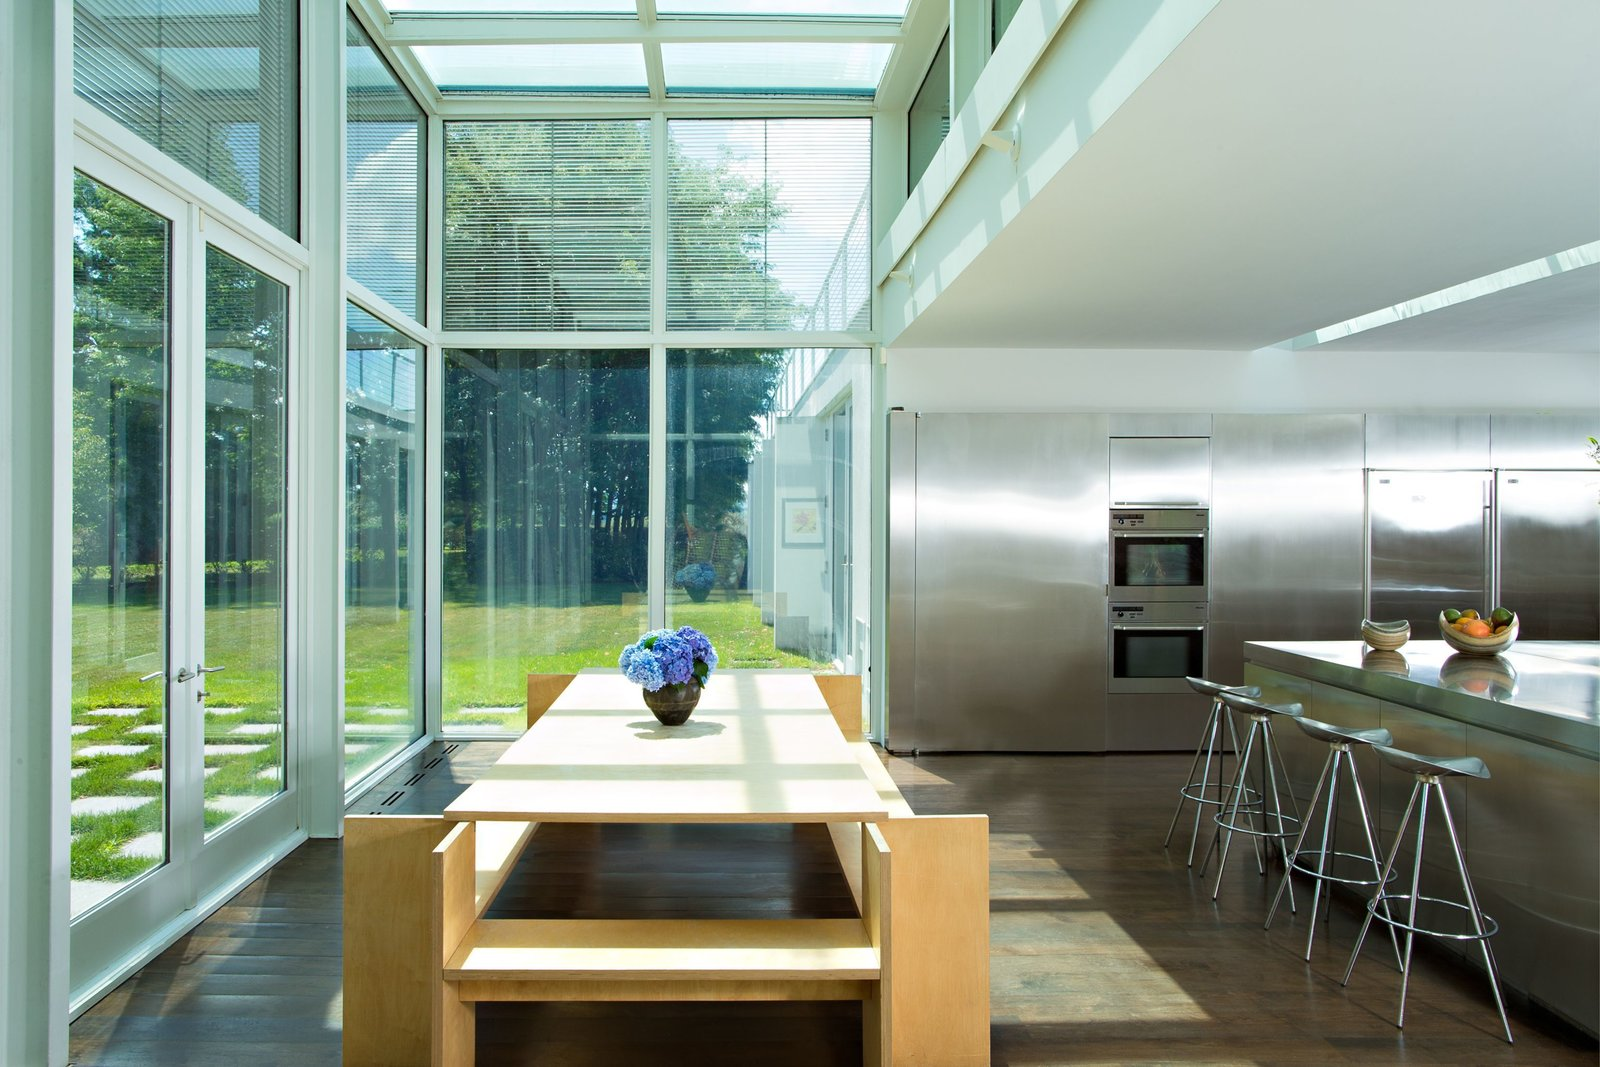 Adjacent to the reflecting pool is a chef's kitchen that's filled with expanses of stainless steel.